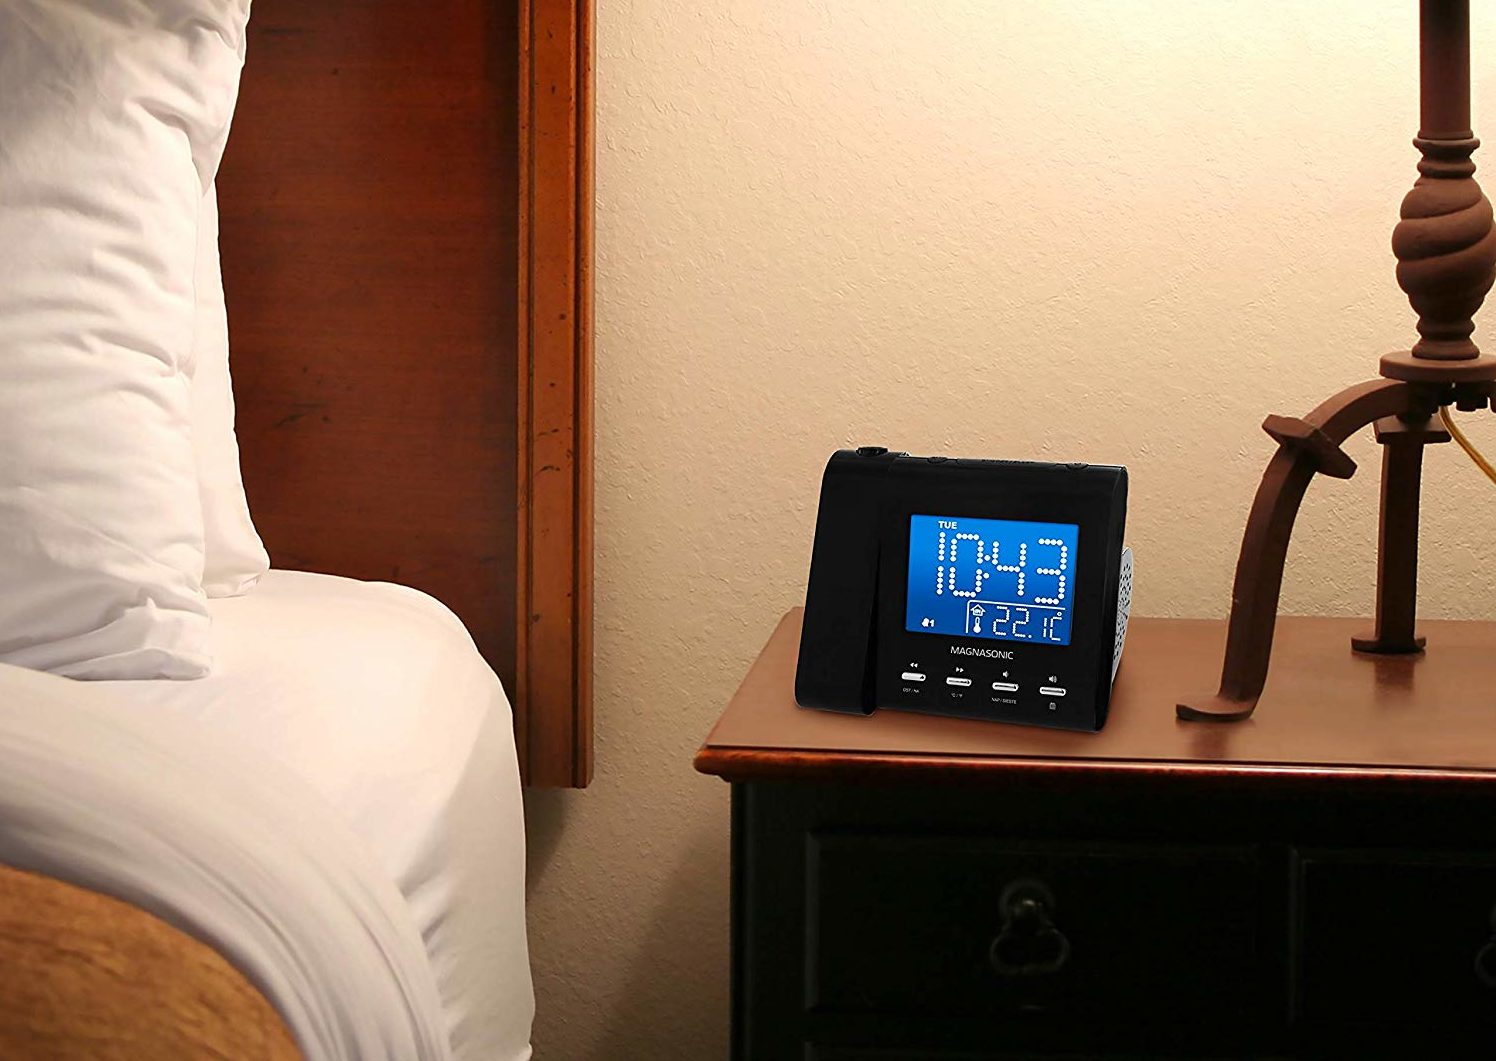 Alarm clock on nightstand